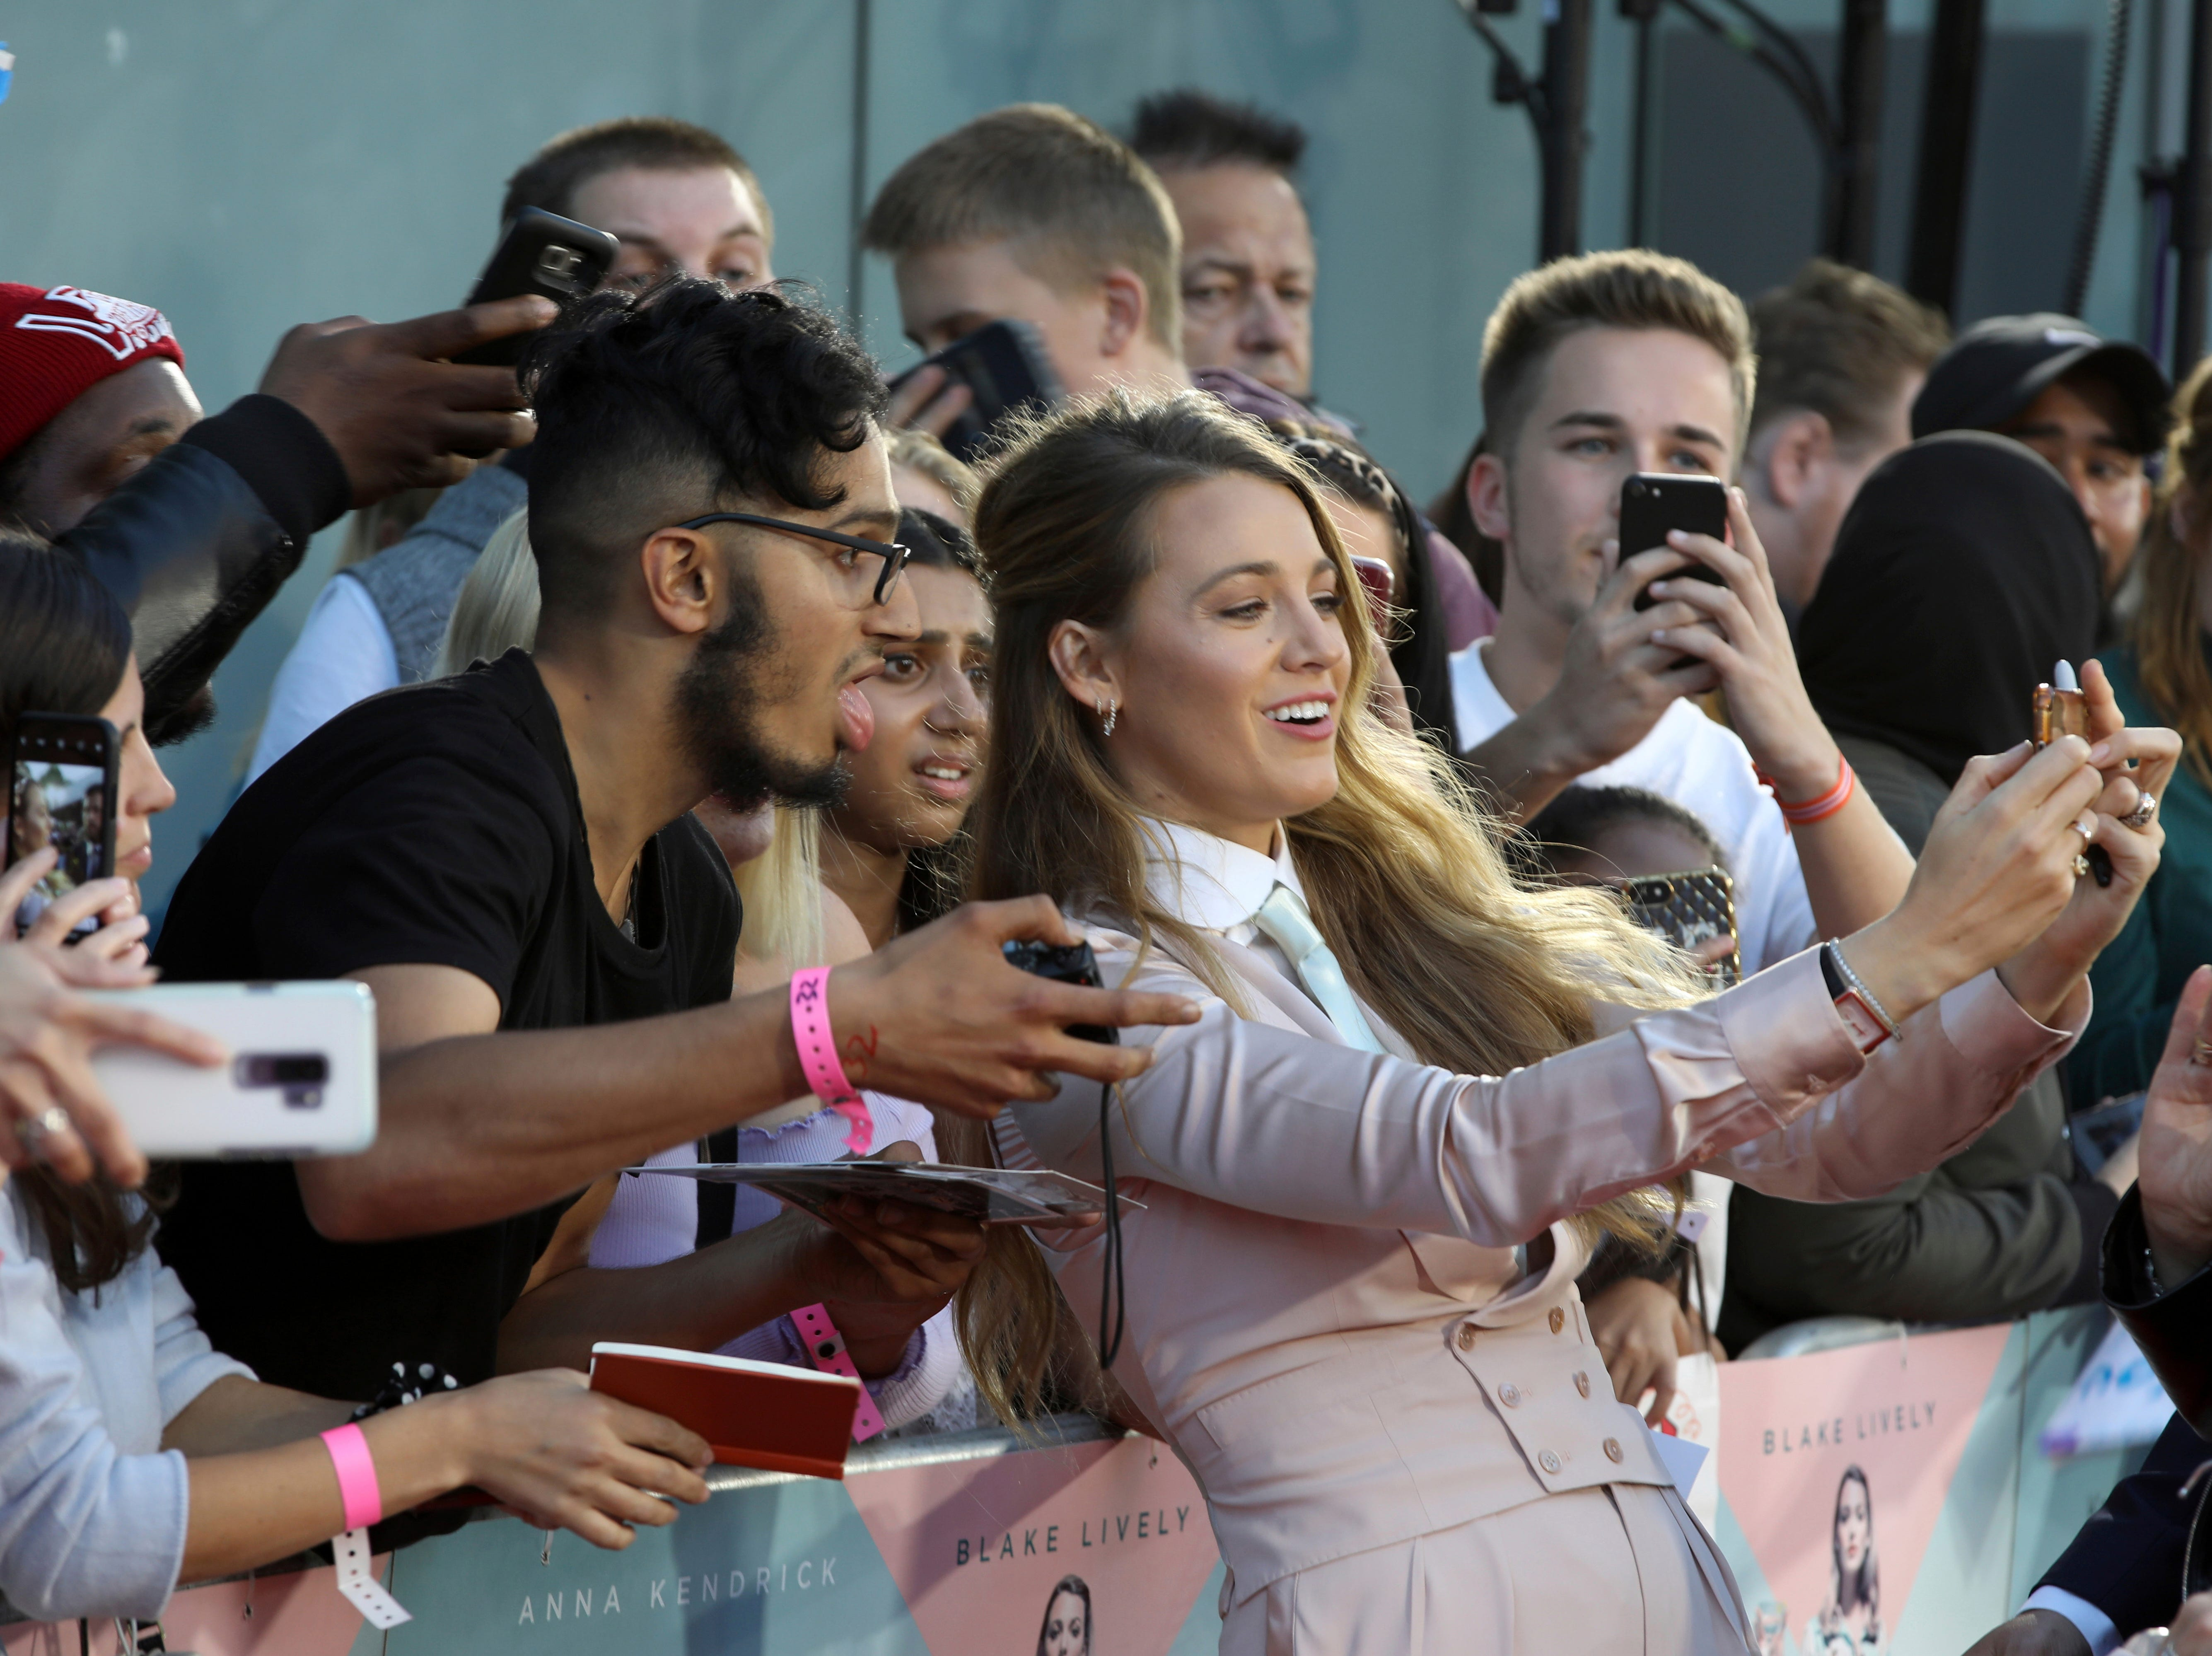 Actress Blake Lively poses with fans upon arrival at the premiere of the film 'A Simple Favour' in London, Monday, Sept. 17, 2018.